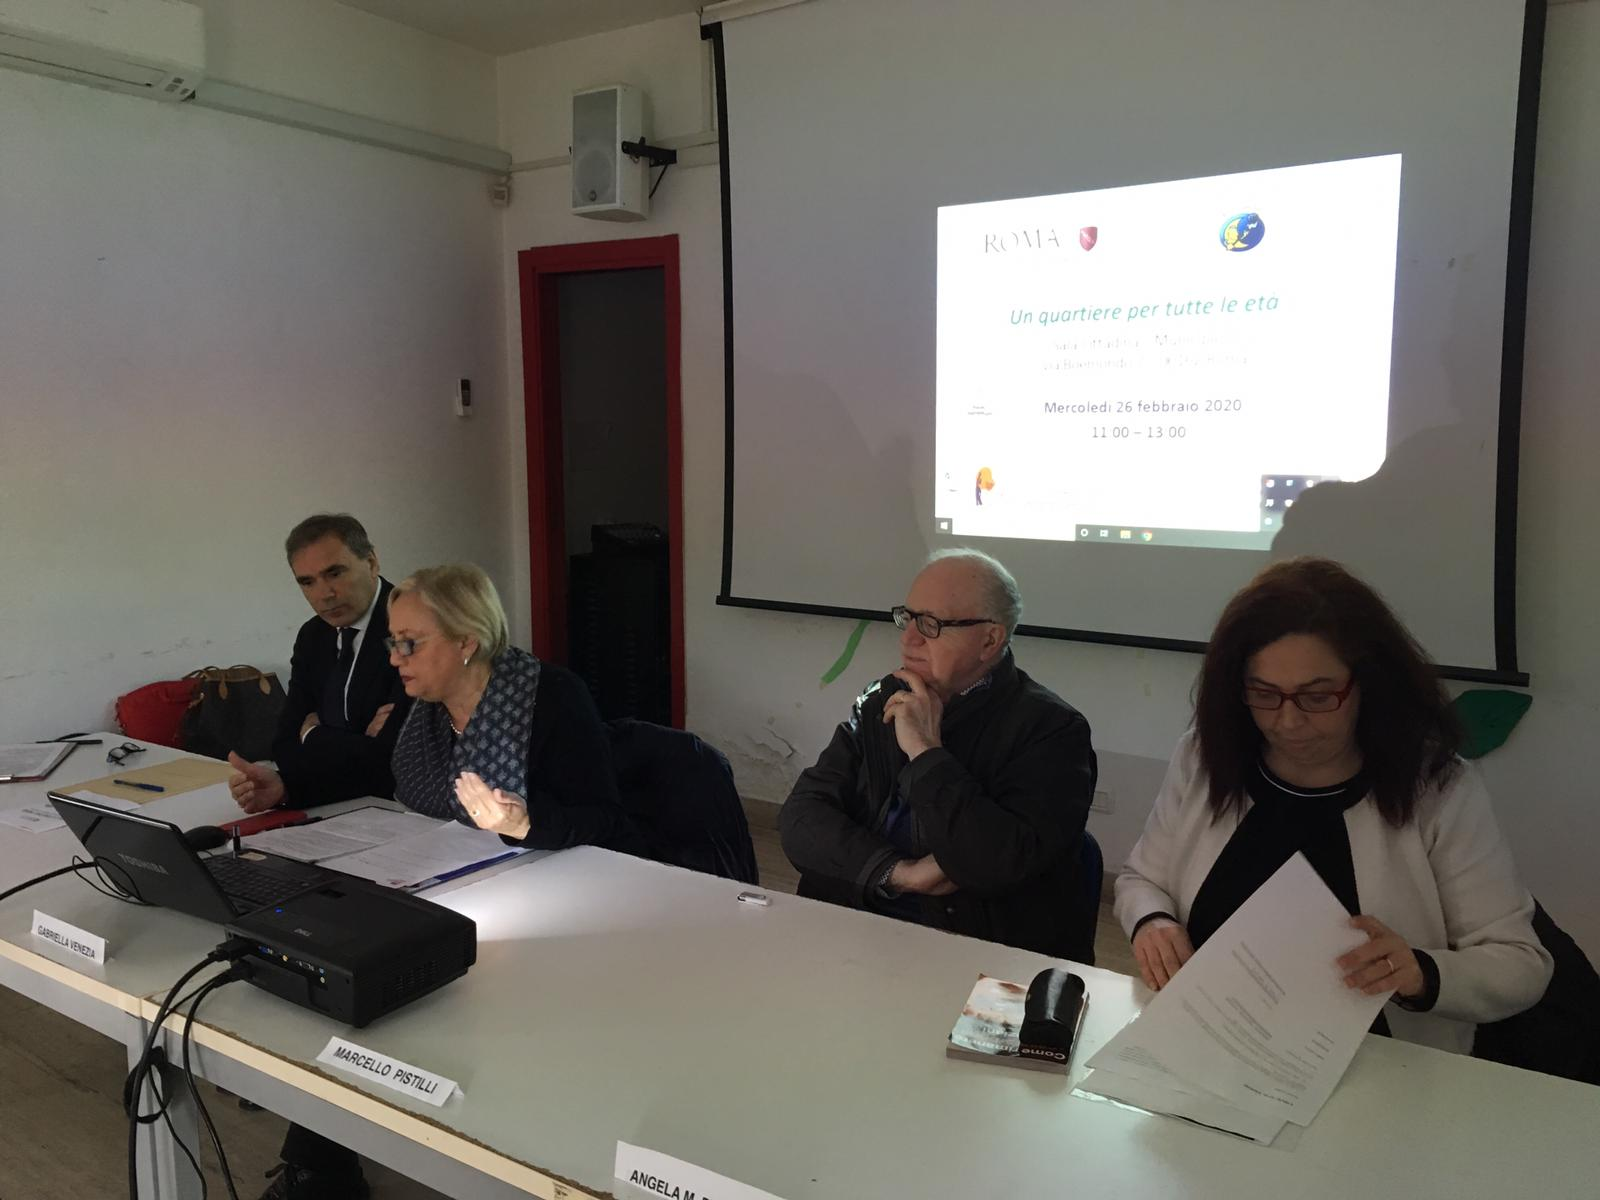 The second training workshop in Rome 2020.FEB.26 (EN+IT)